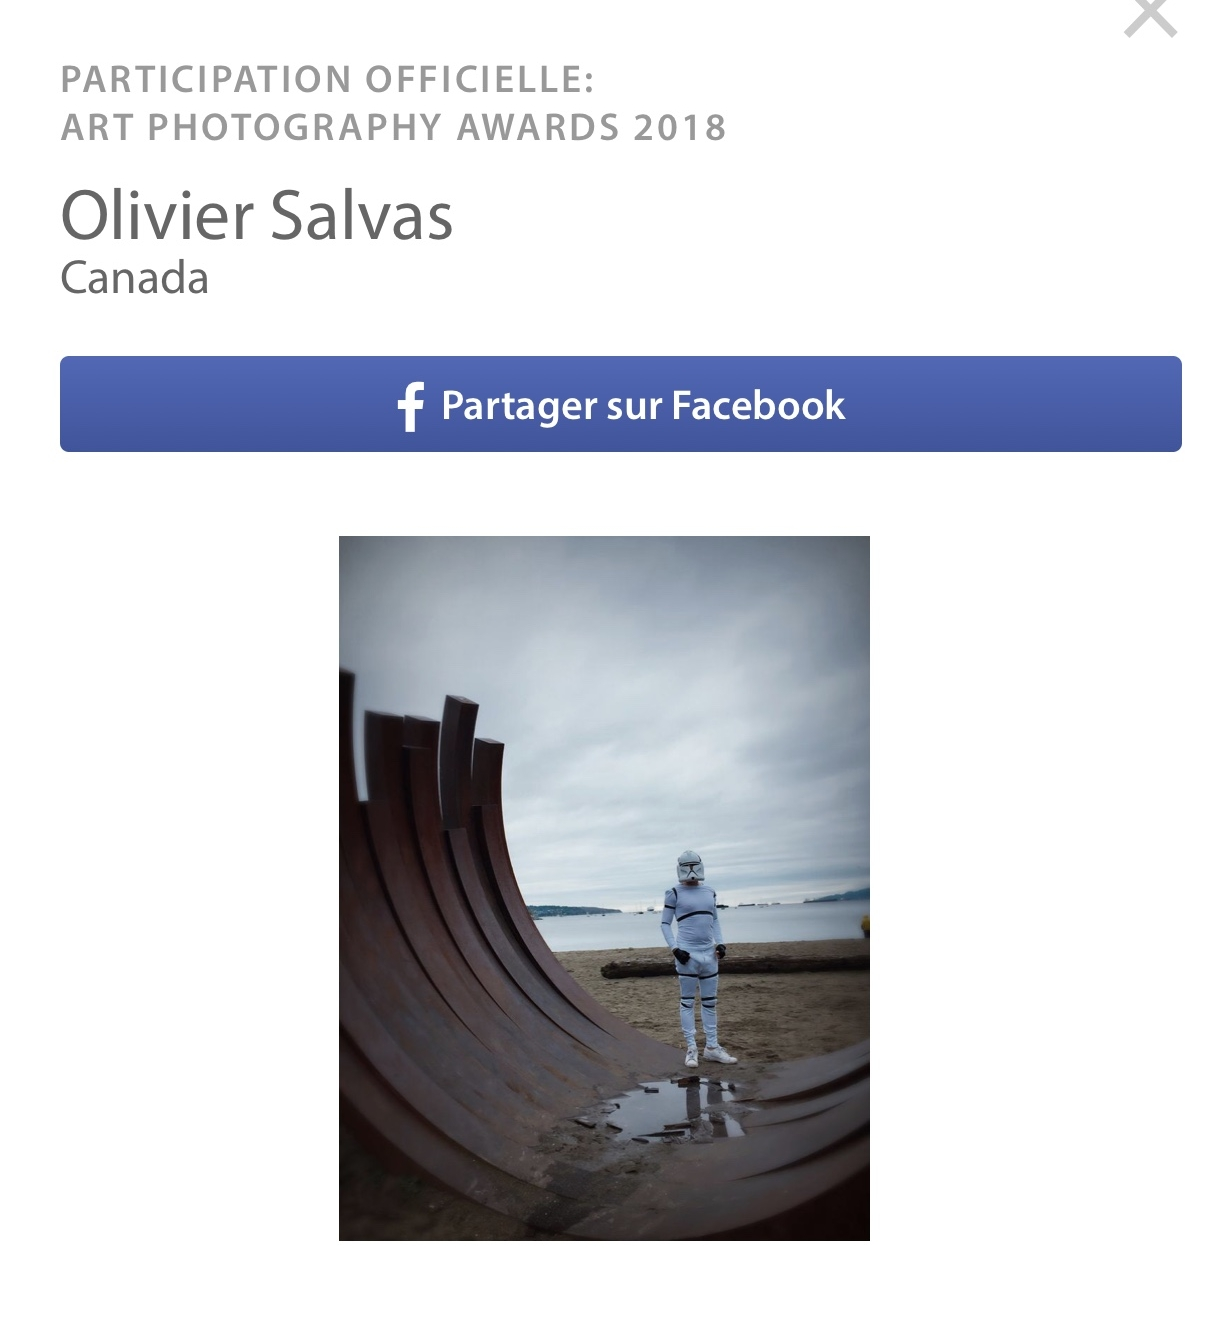 Create|IV candidacy at the LensCulture Photography Awards